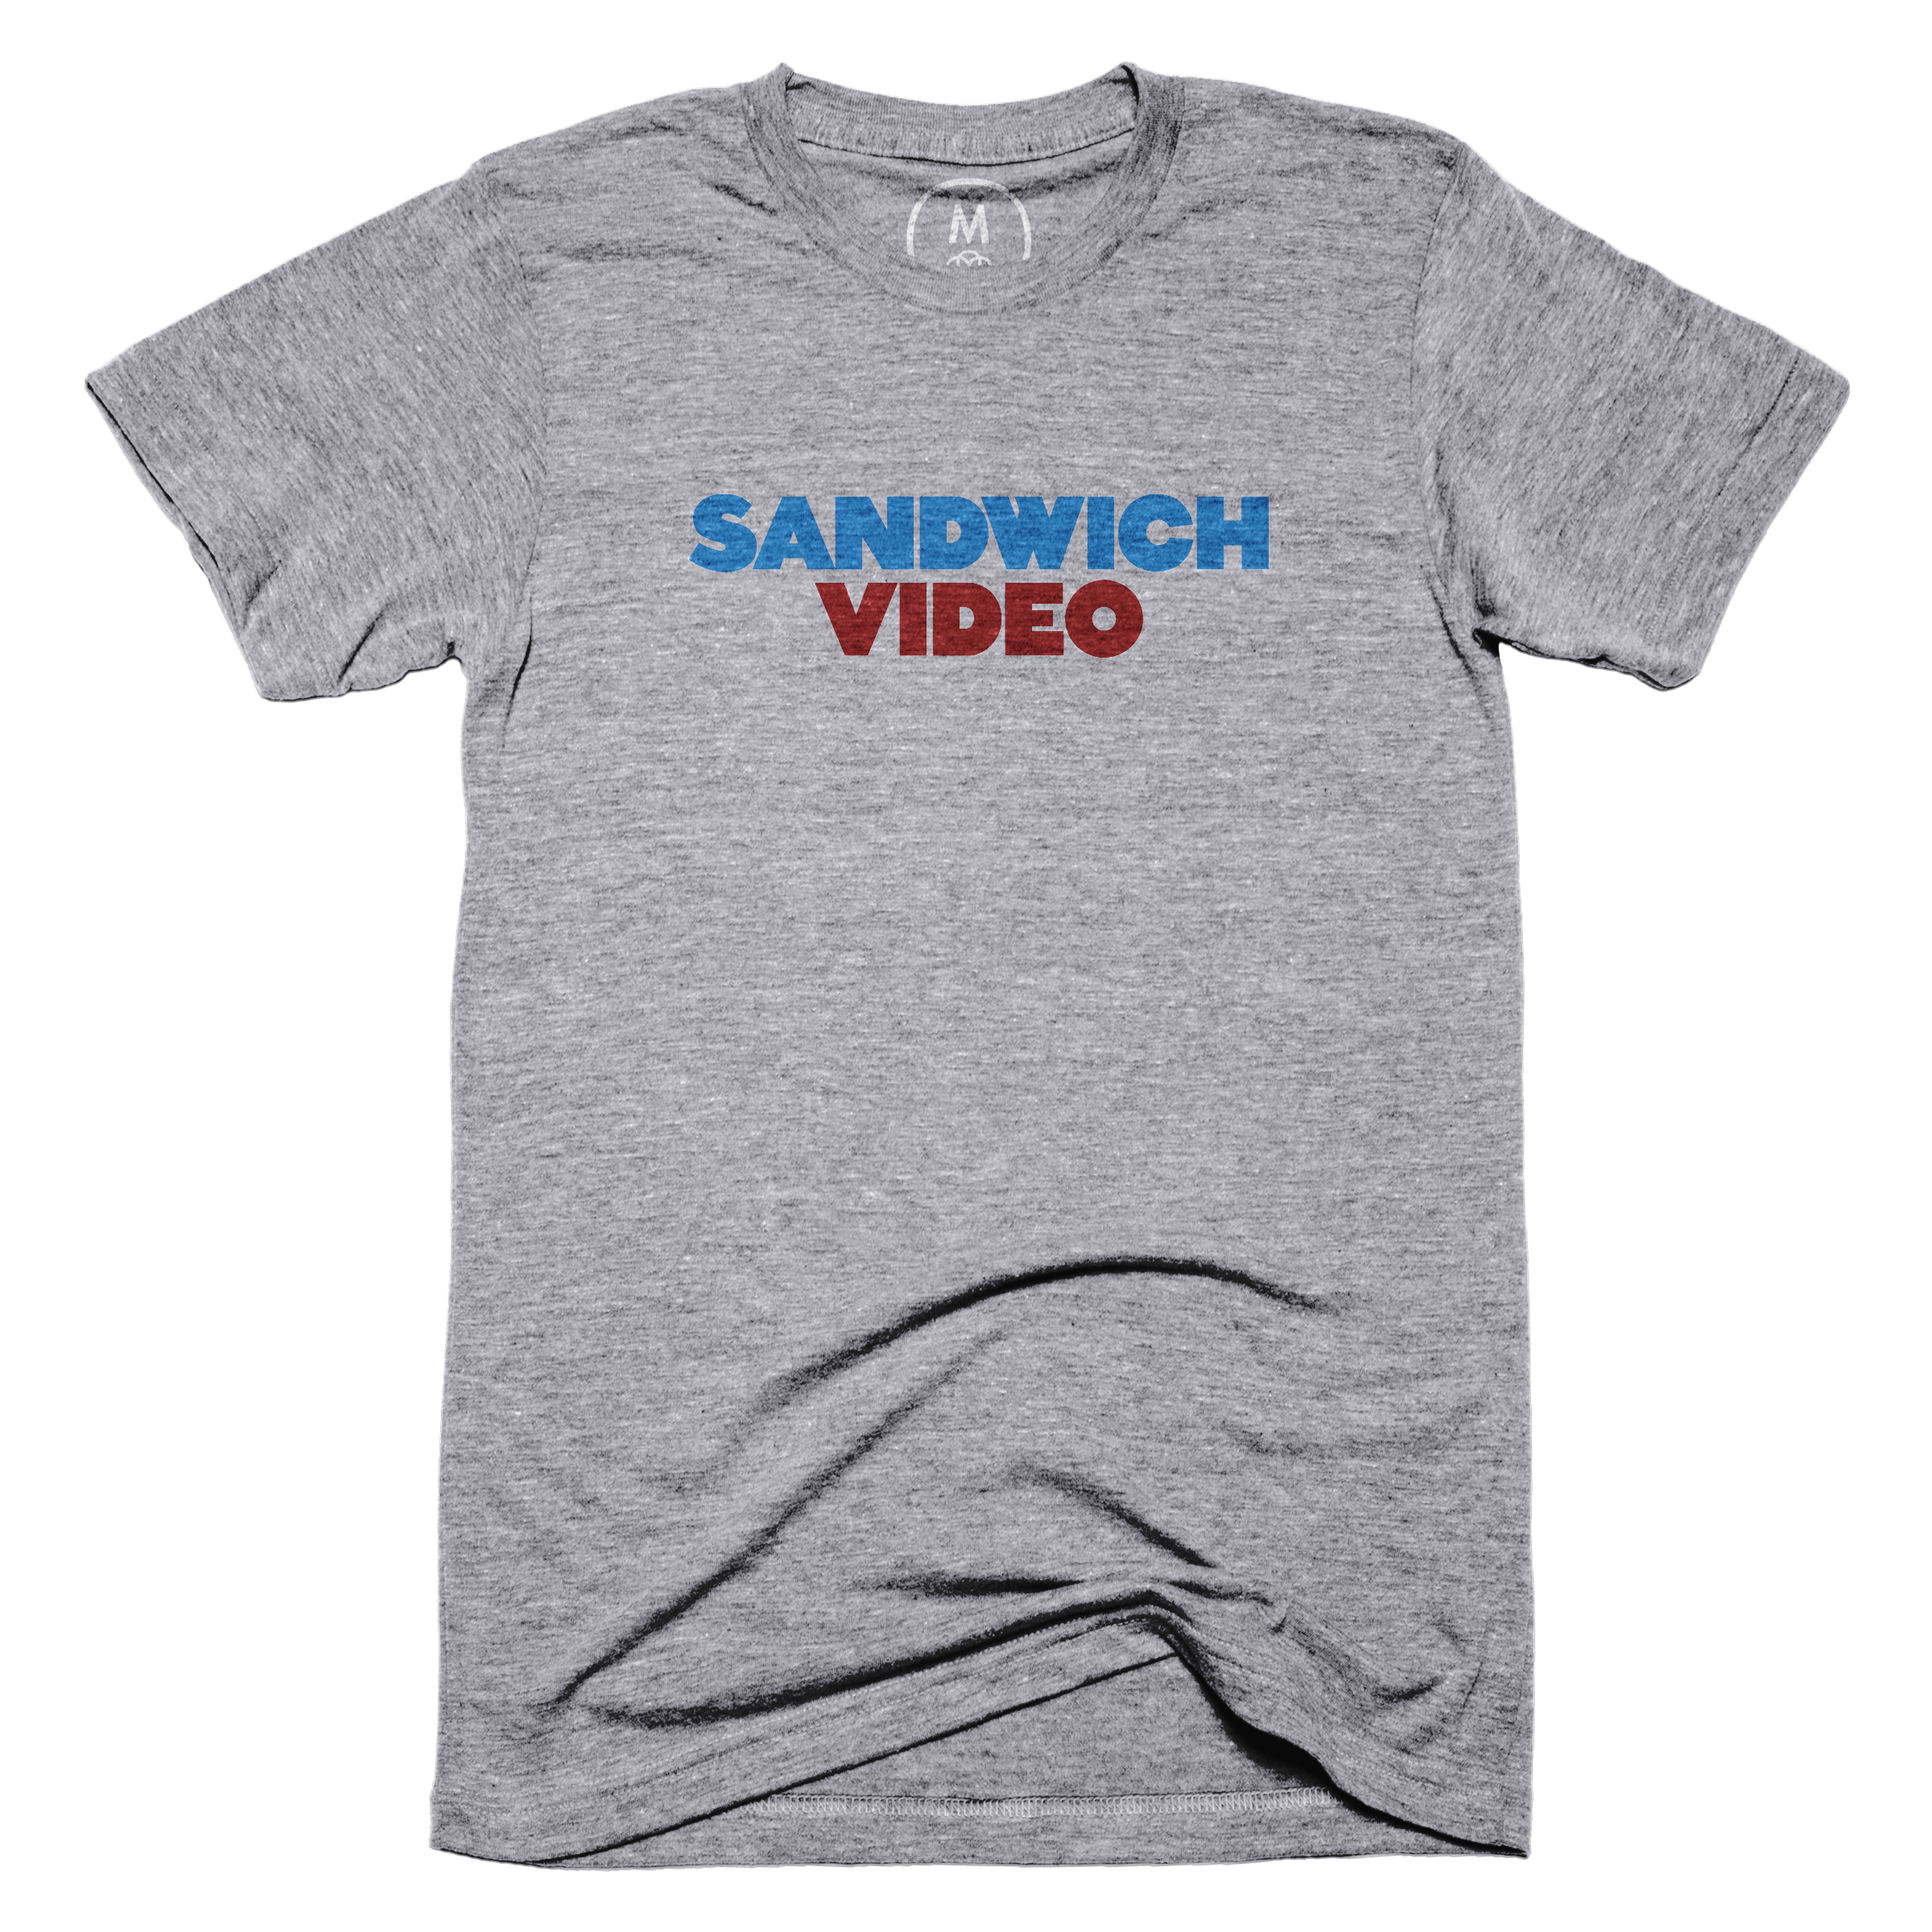 "Sandwich Video ""The Classic"""